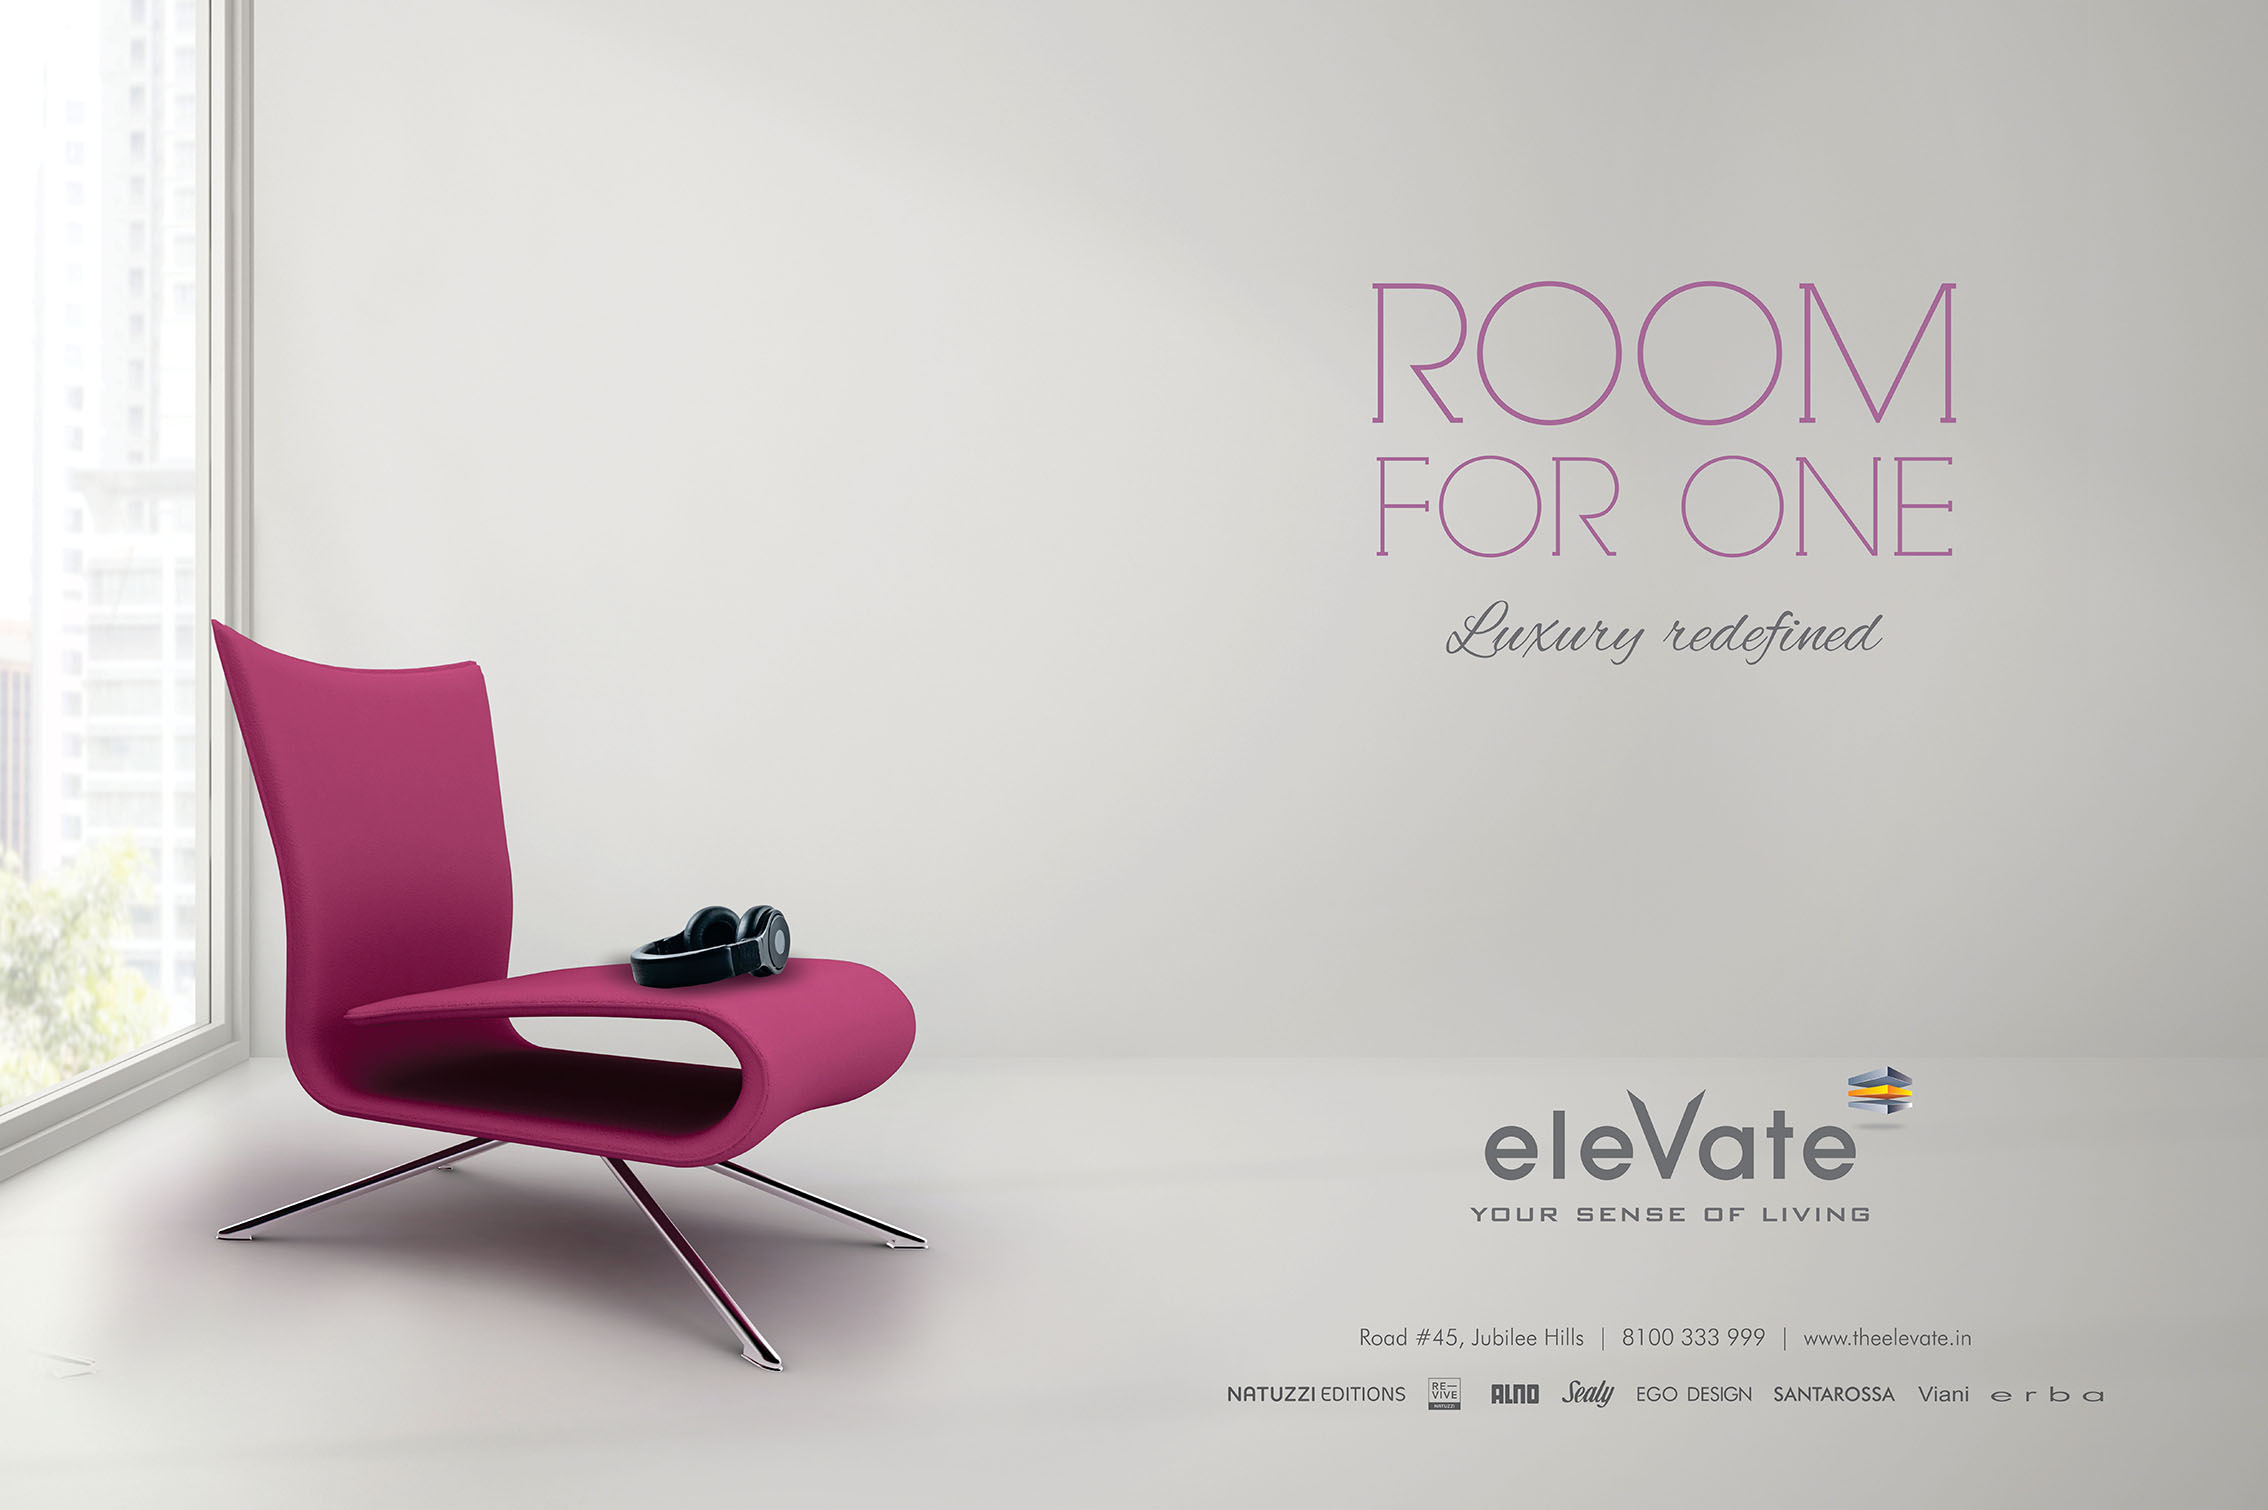 td48wcjbcpt-elevate,-best-furniture-ad-campaign,-what's-in-a-name-creatives-(1)-min